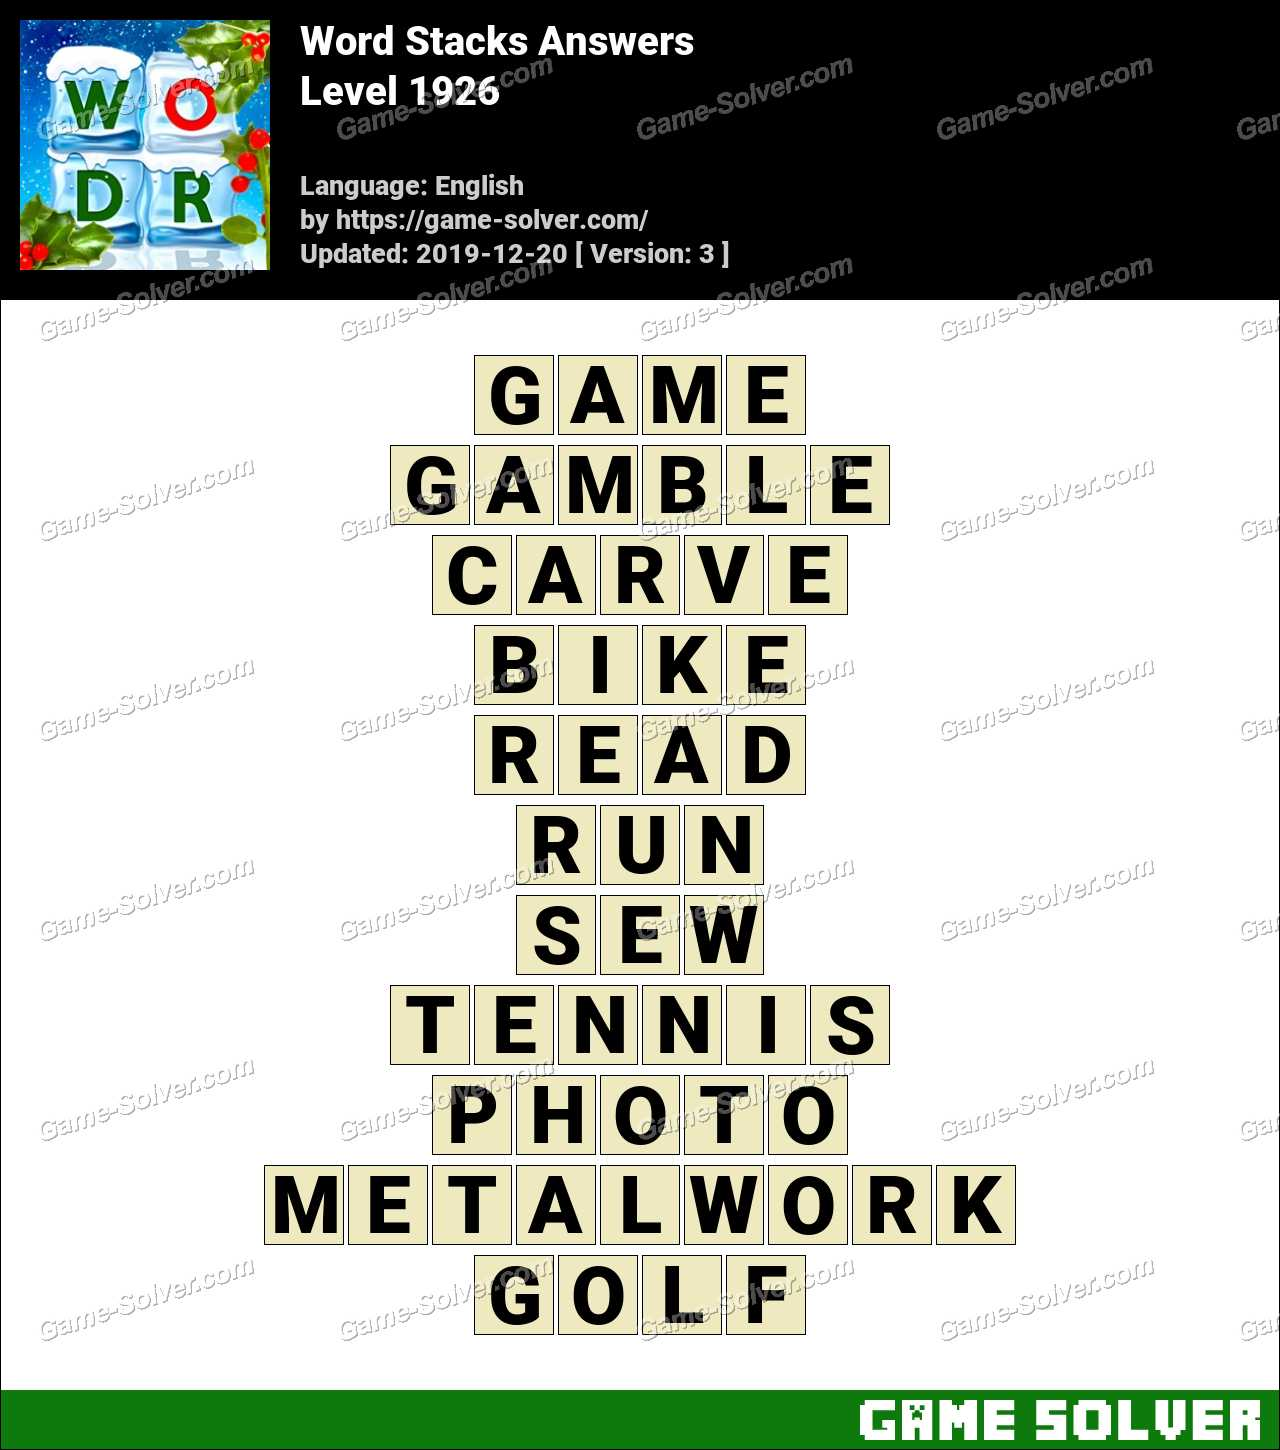 Word Stacks Level 1926 Answers